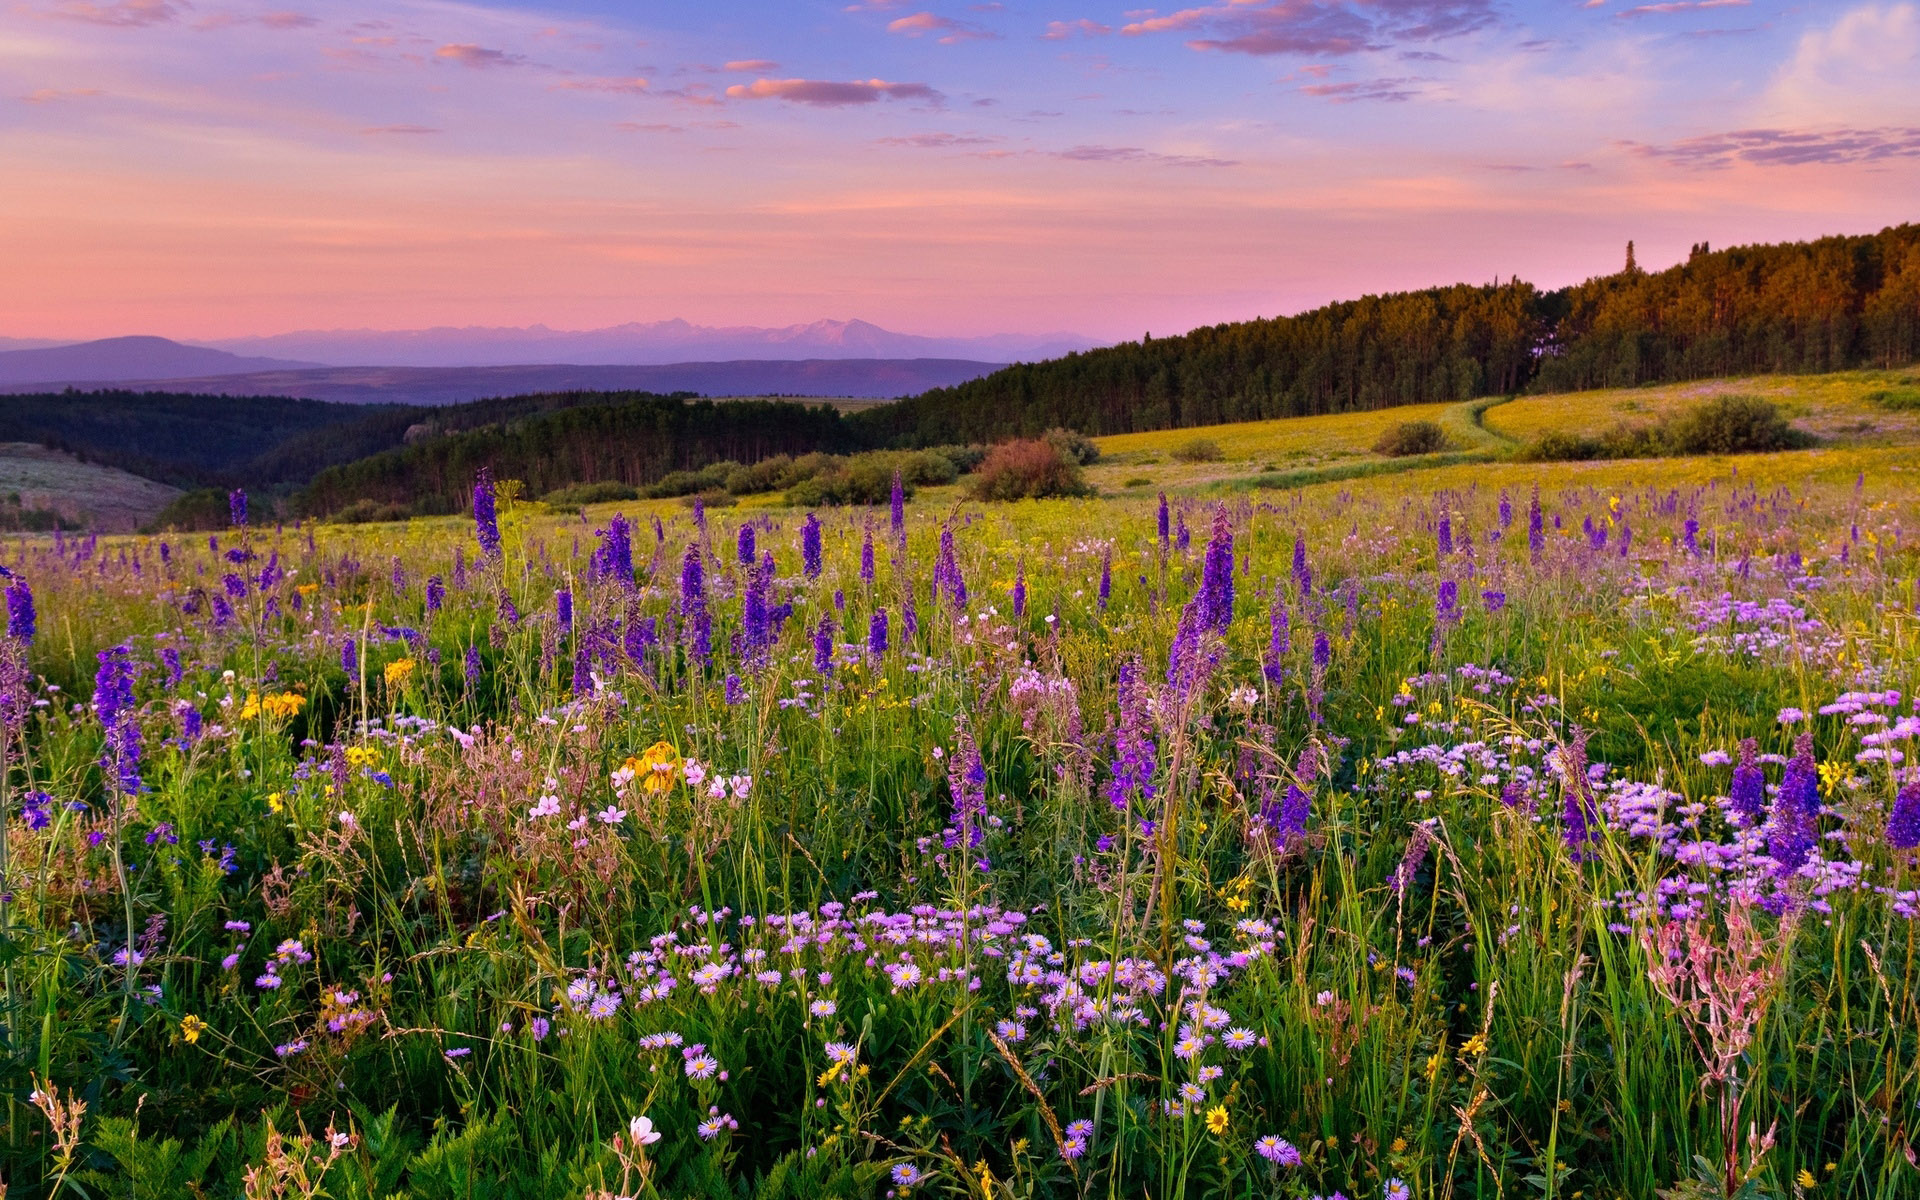 Fall Colored Background Wallpaper Meadow With Mountain Herbs In Different Colors Forest With